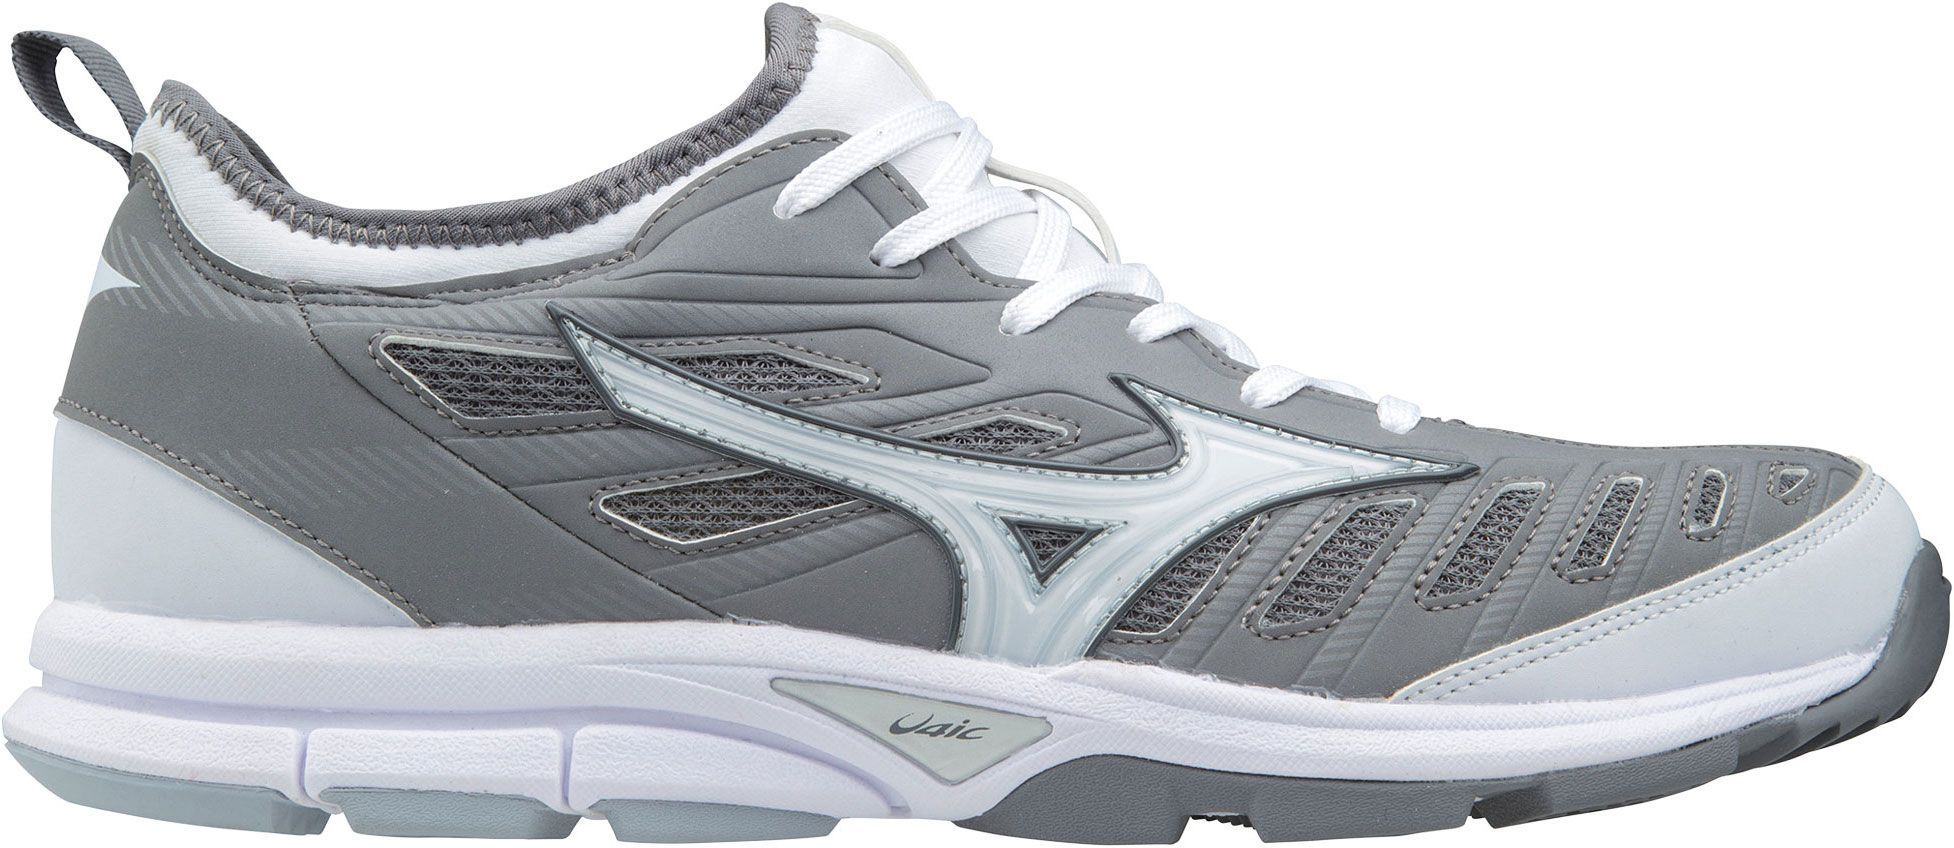 Mizuno Men's Players Trainer 2 Baseball Turf Shoes